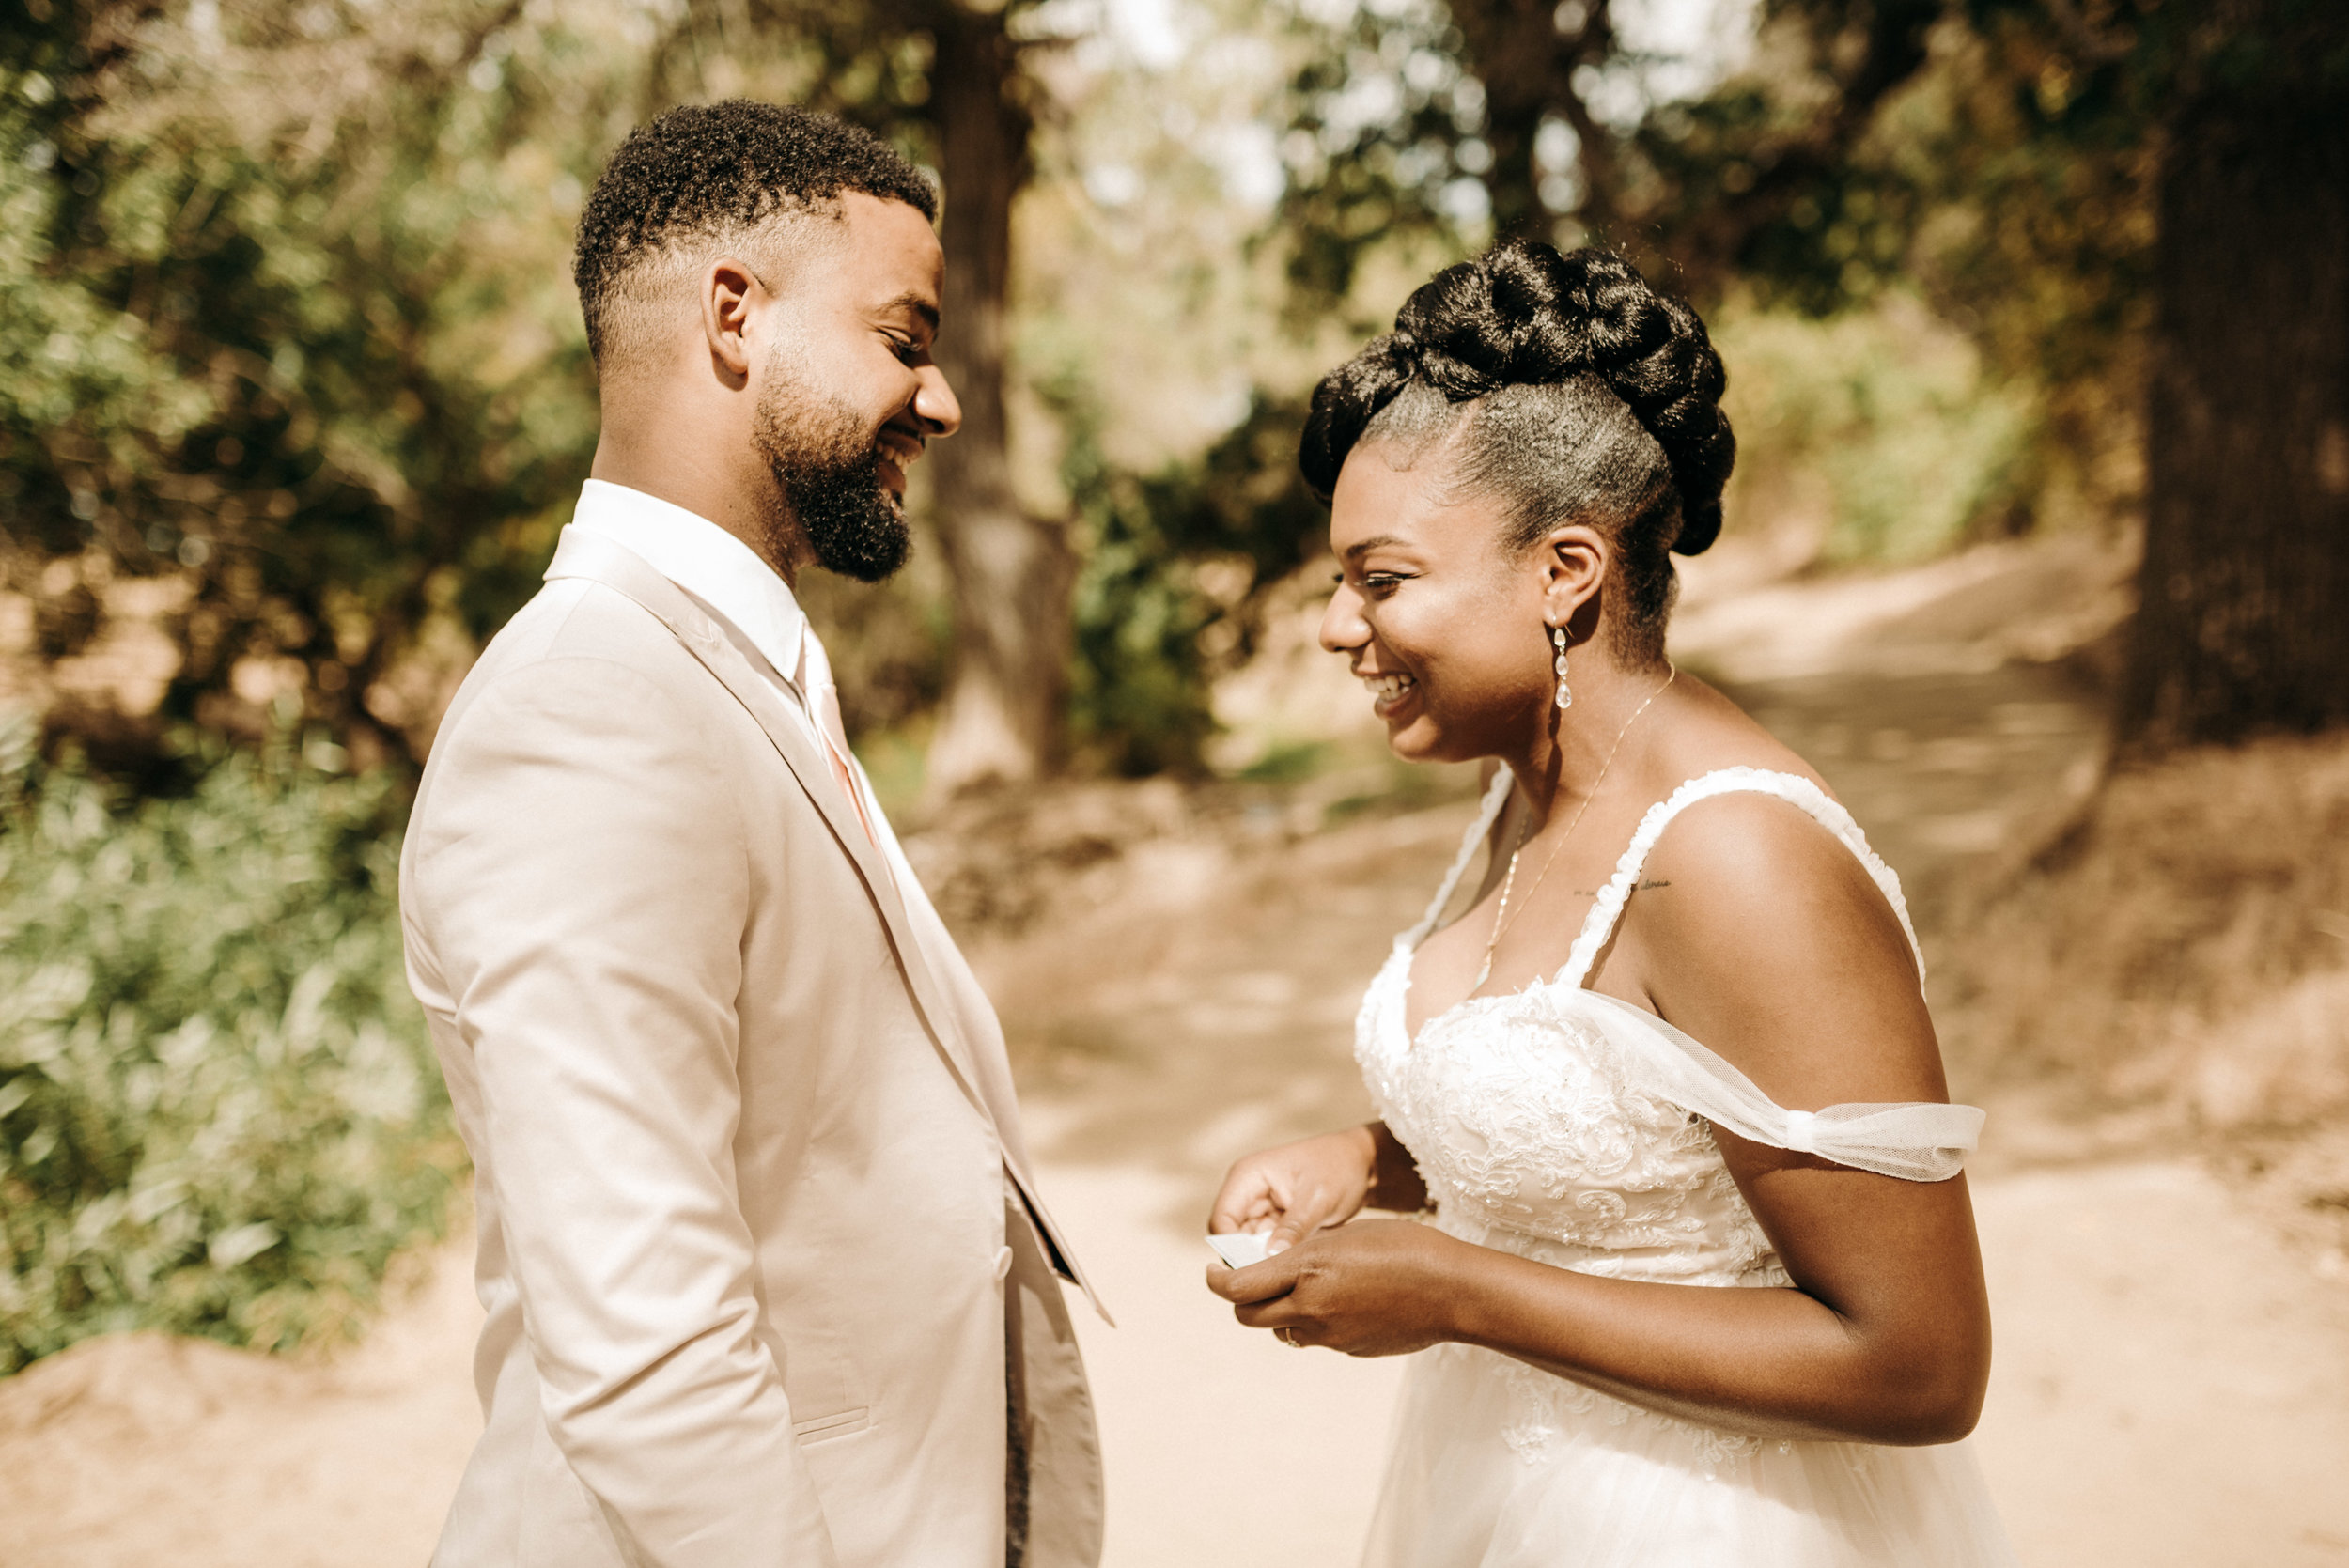 bride and groom have their first look at round valley park in brentwood, california. taken by wedding photographer in brentwood, california